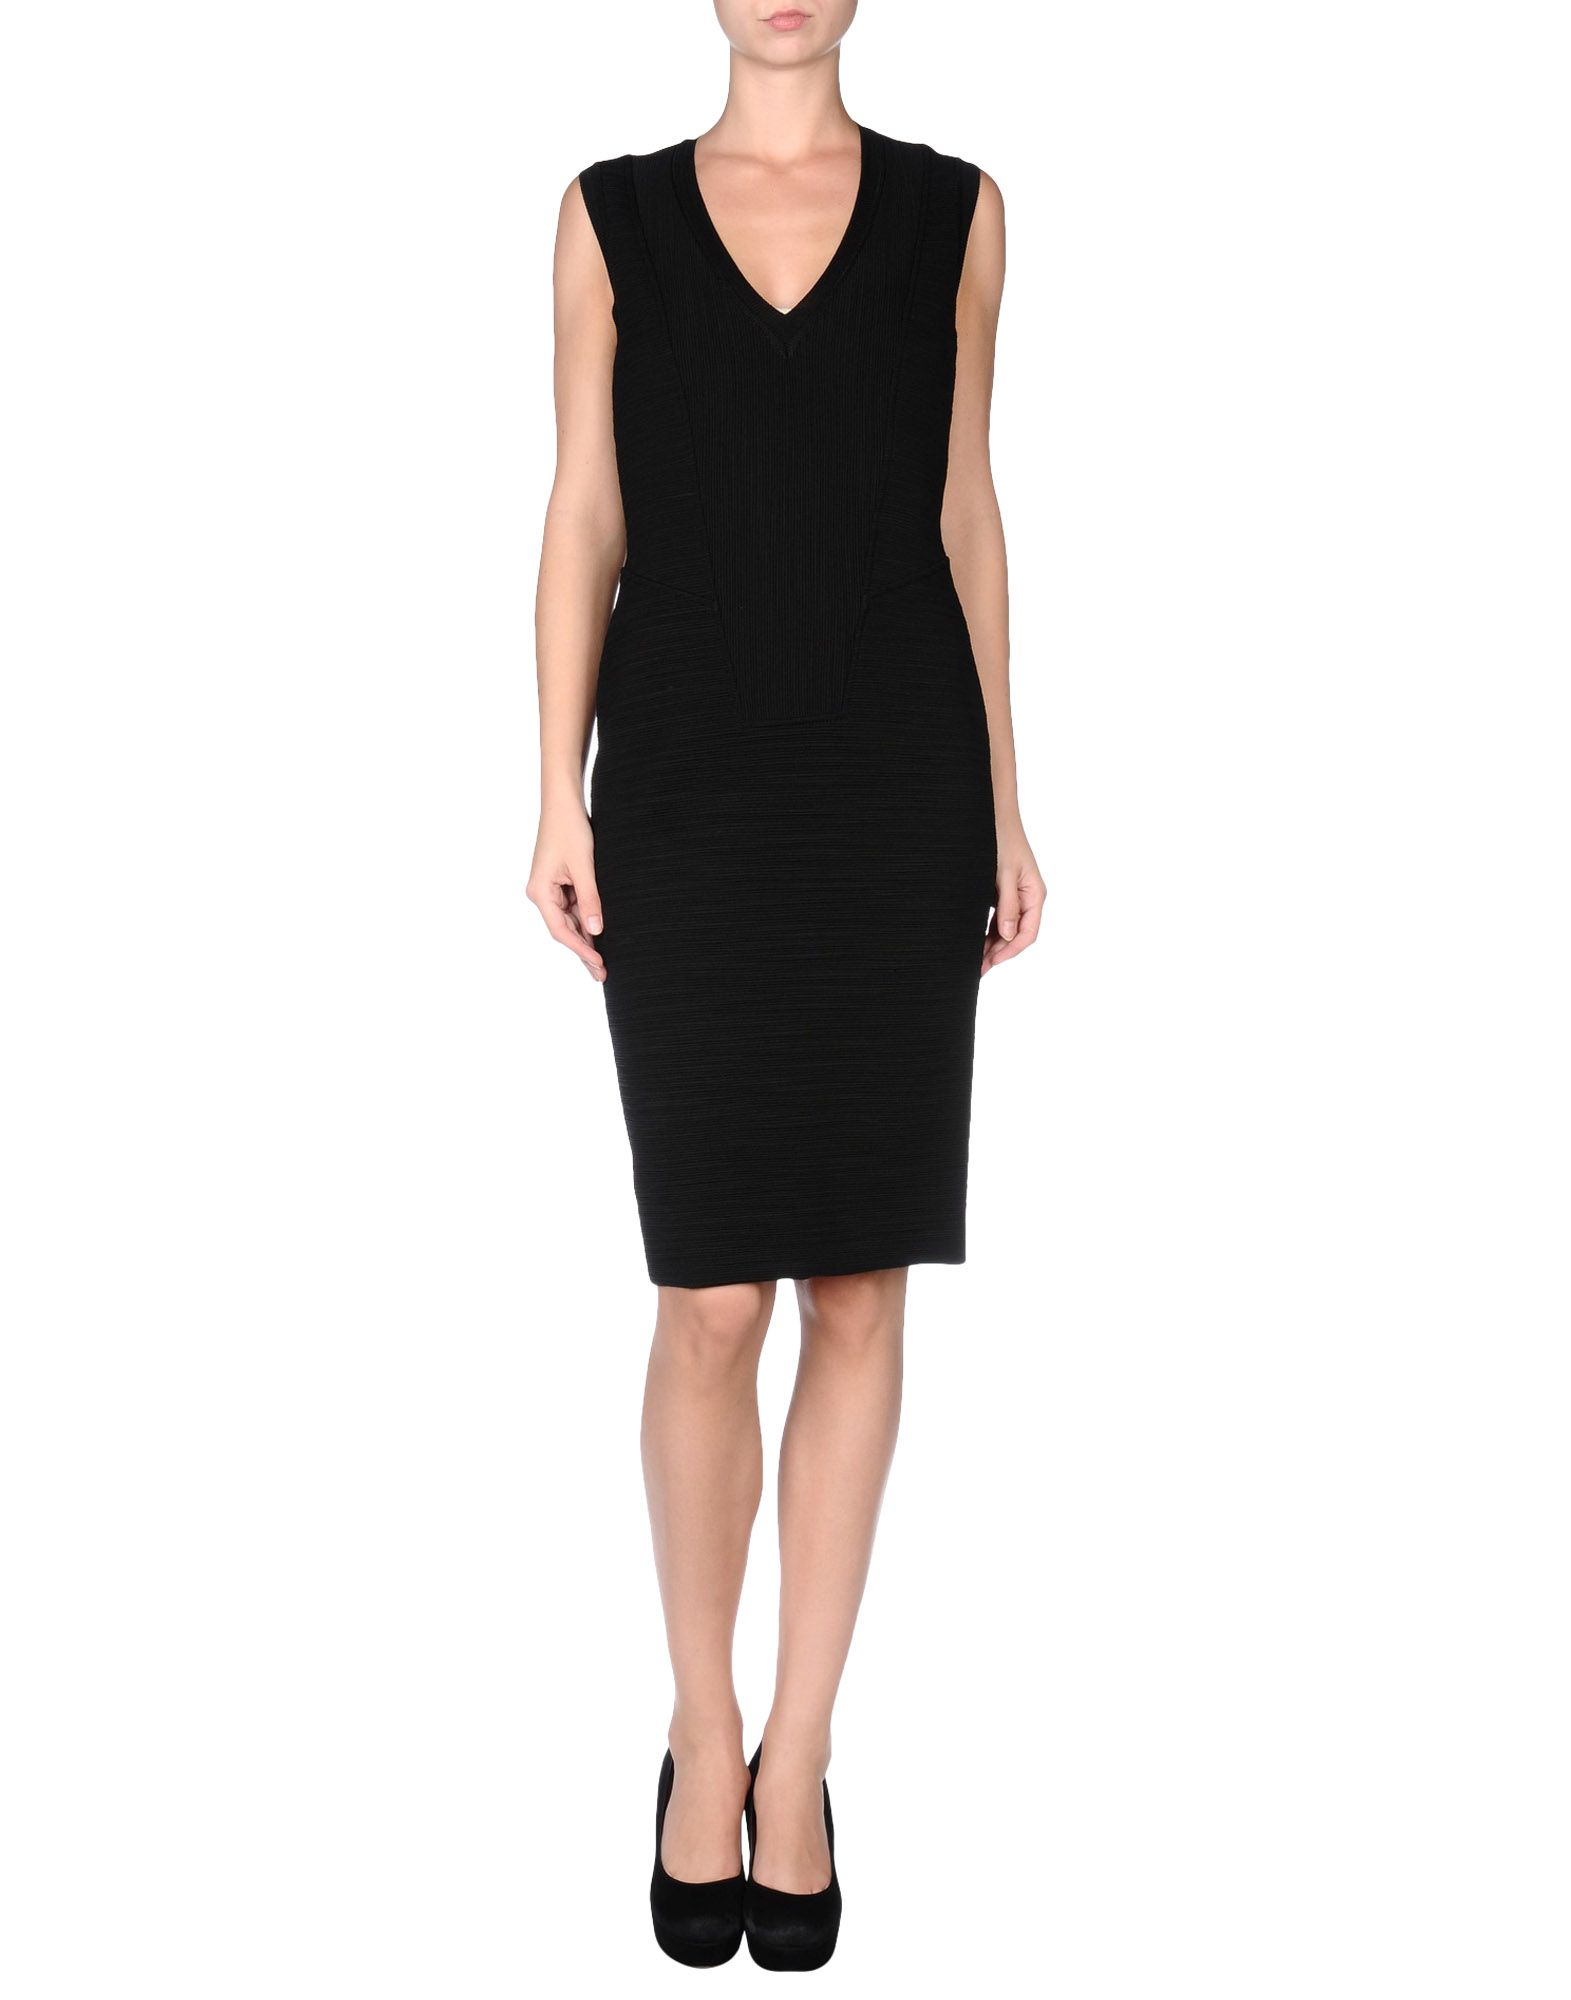 Givenchy black knee length dress casual dresses product 1 25463487 0